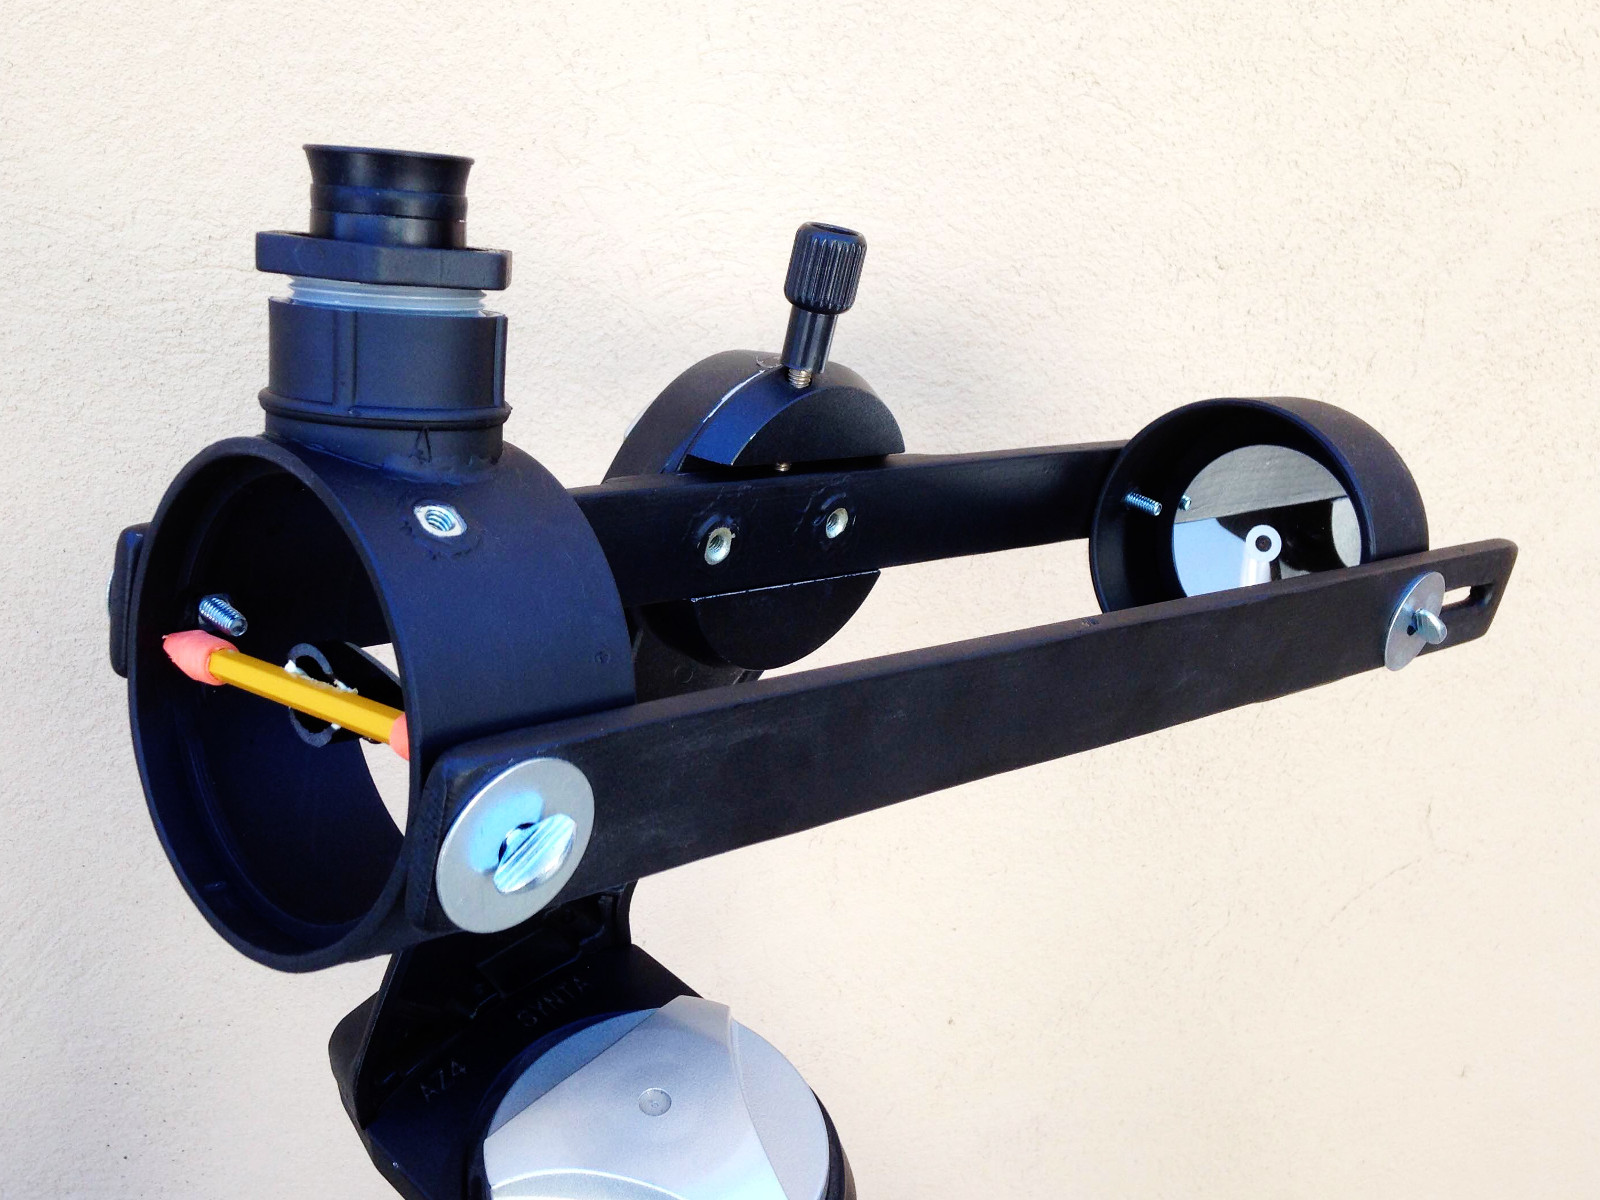 diy scope diy astronomy projects 10 minute astronomy